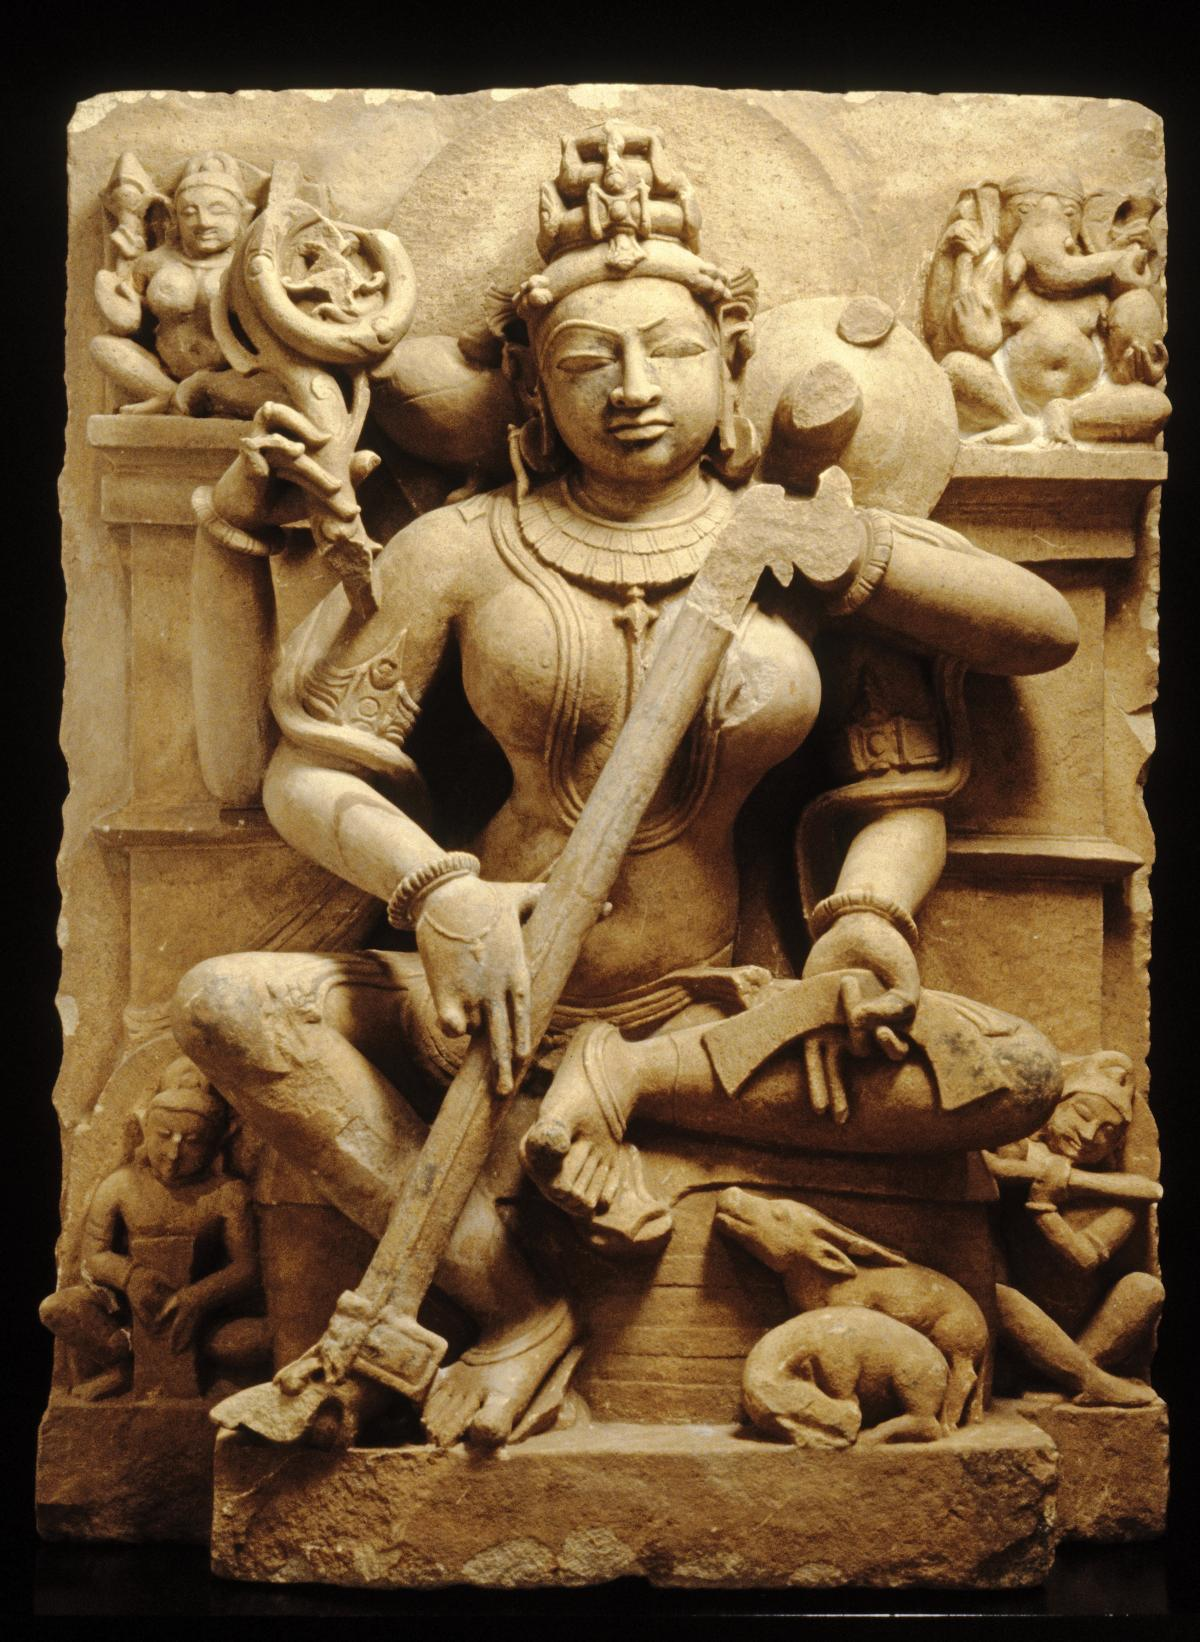 Sarasvati, goddess of speech, learning, and the arts, sculpted in sand-colored stone